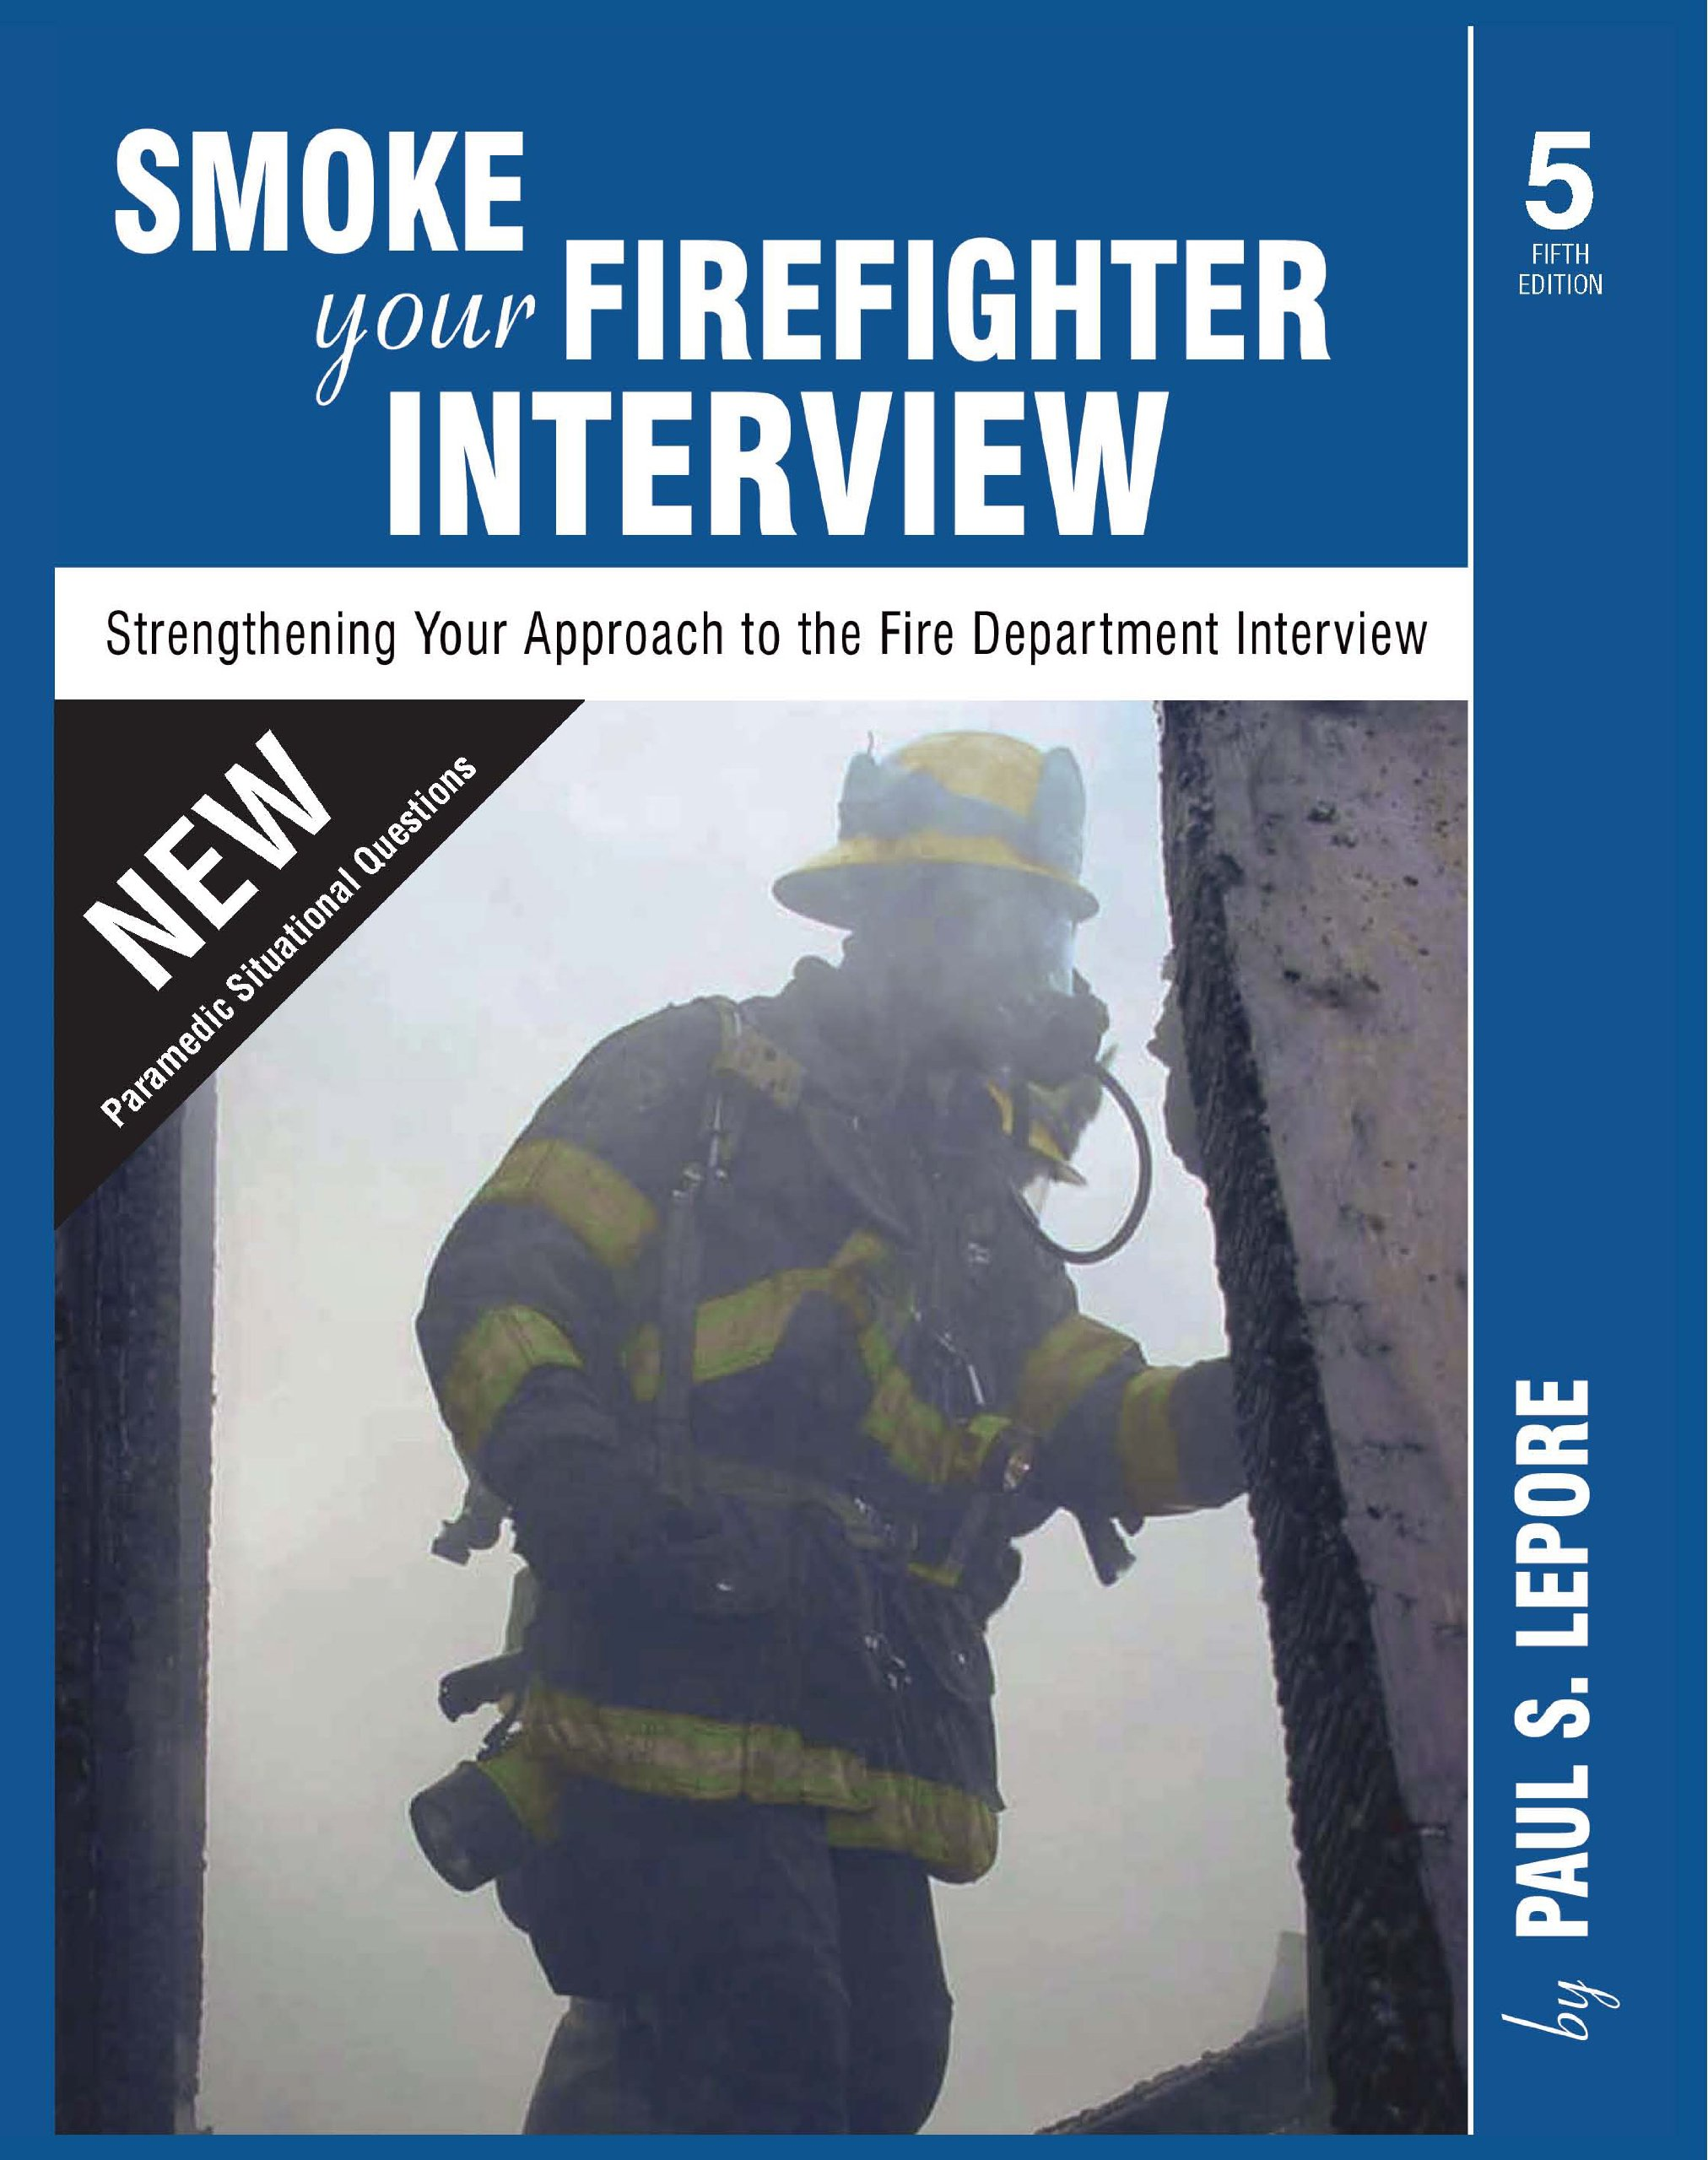 smoke your firefighter interview paul s lepore  smoke your firefighter interview paul s lepore 9780972993456 com books